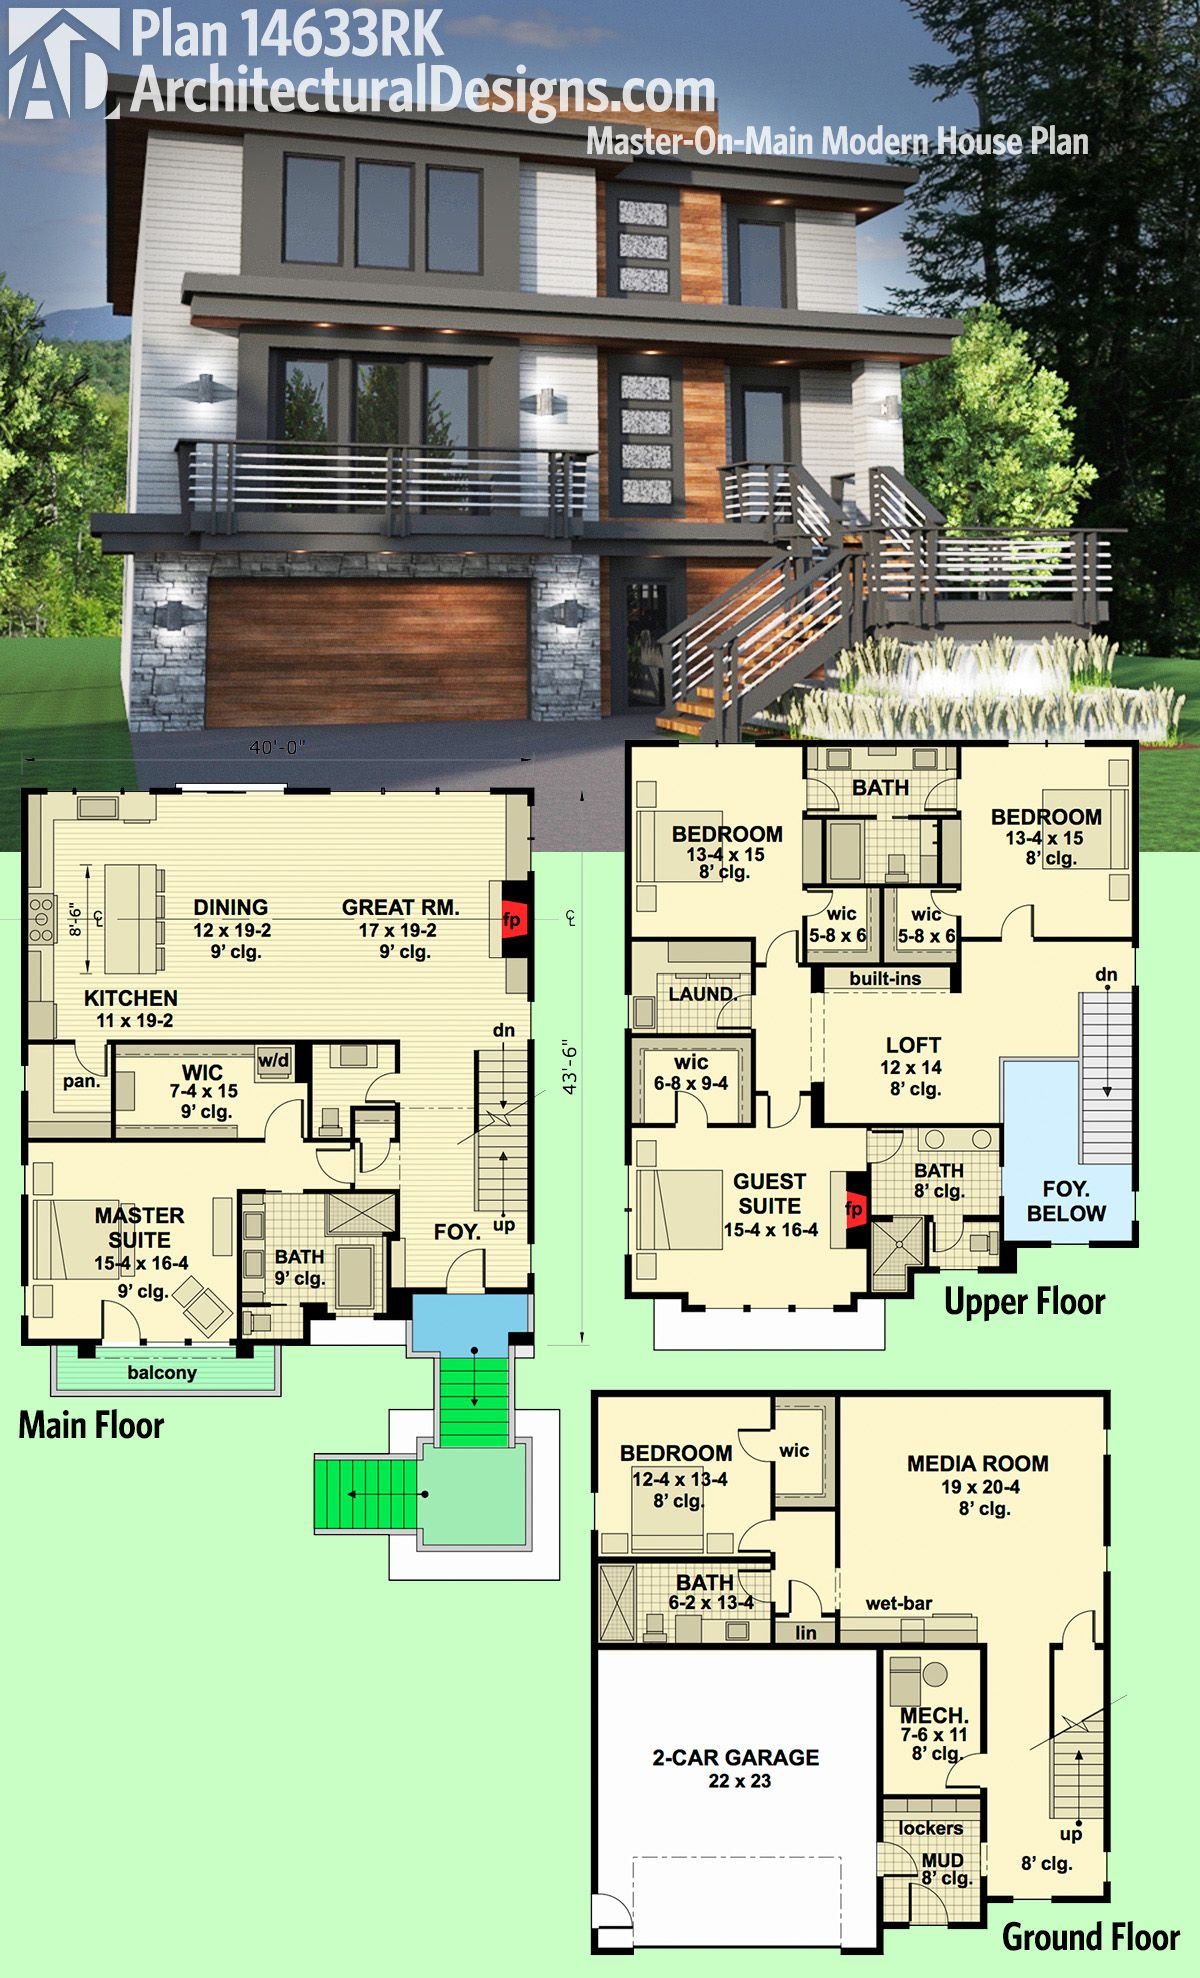 Plan 14633rk master on main modern house plan modern for Modern home building plans